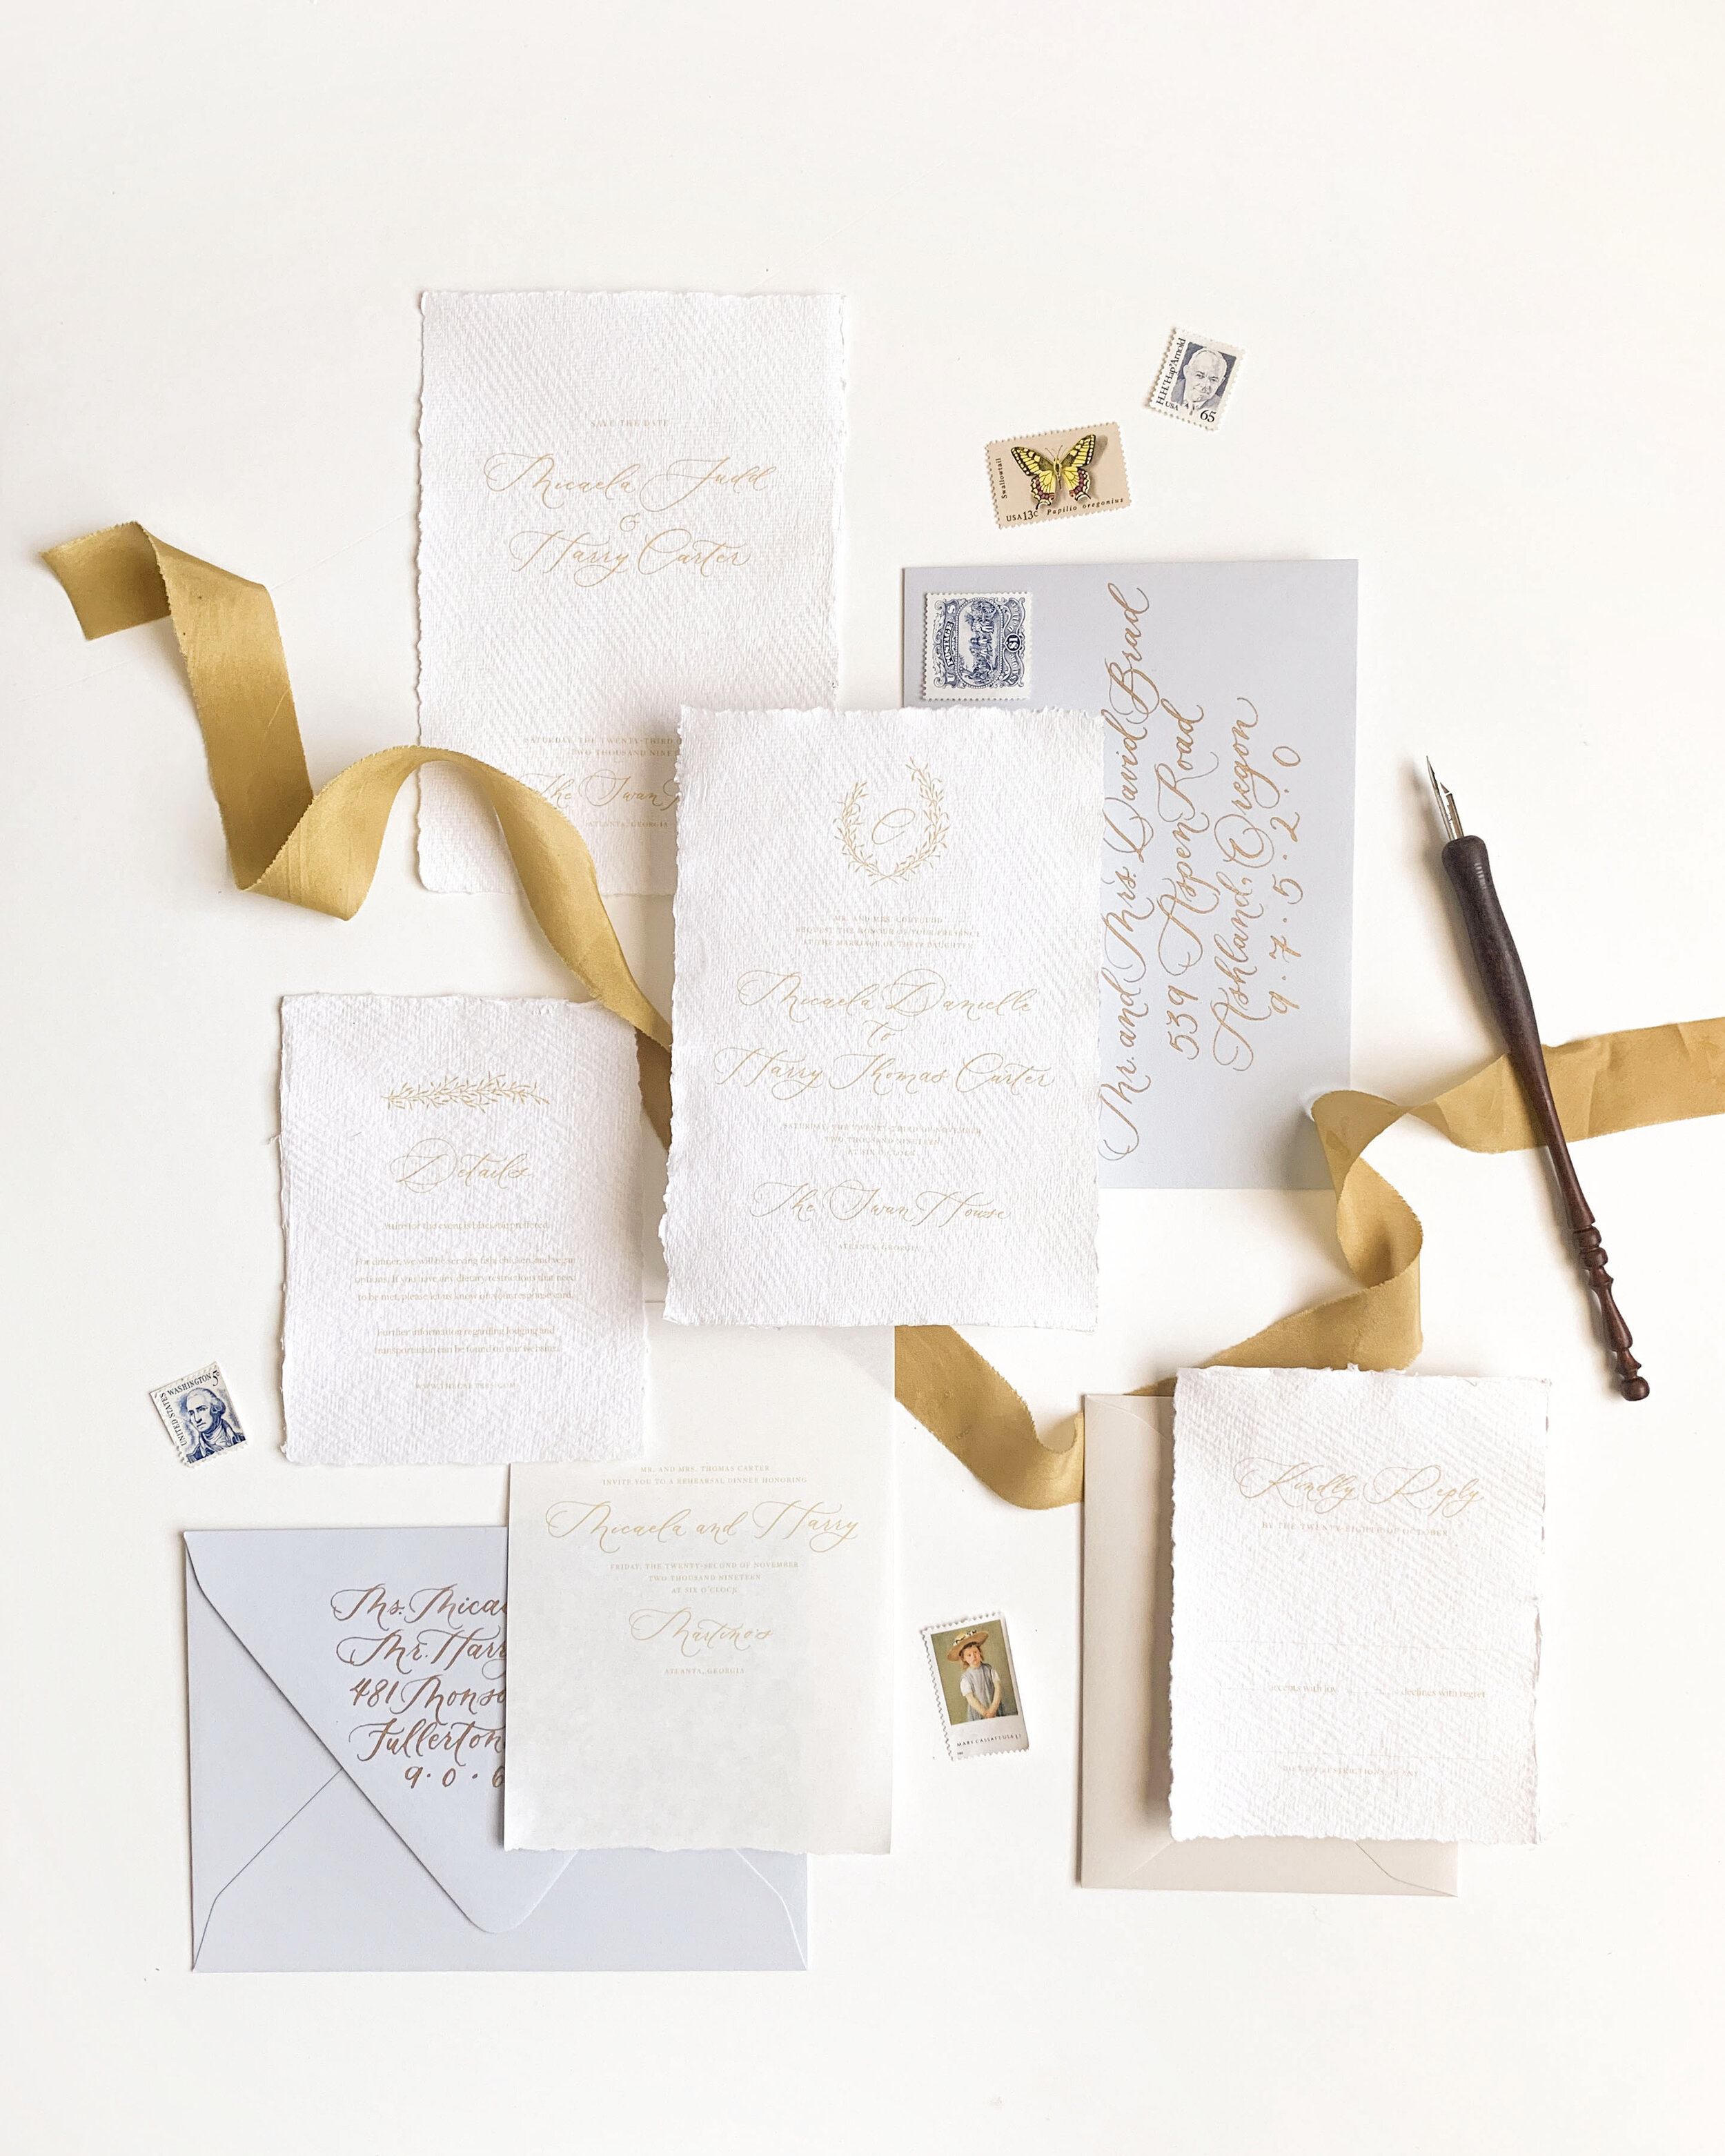 let's work together - If you're looking for refined, hand-crafted wedding invitations, you're in the right place! With years of experience and education under our belt, we're ready to help bring your vision to life, creating a meaningful heirloom for your wedding day. Tell us a little bit about you and your event, and we'll send over a quote and talk options!